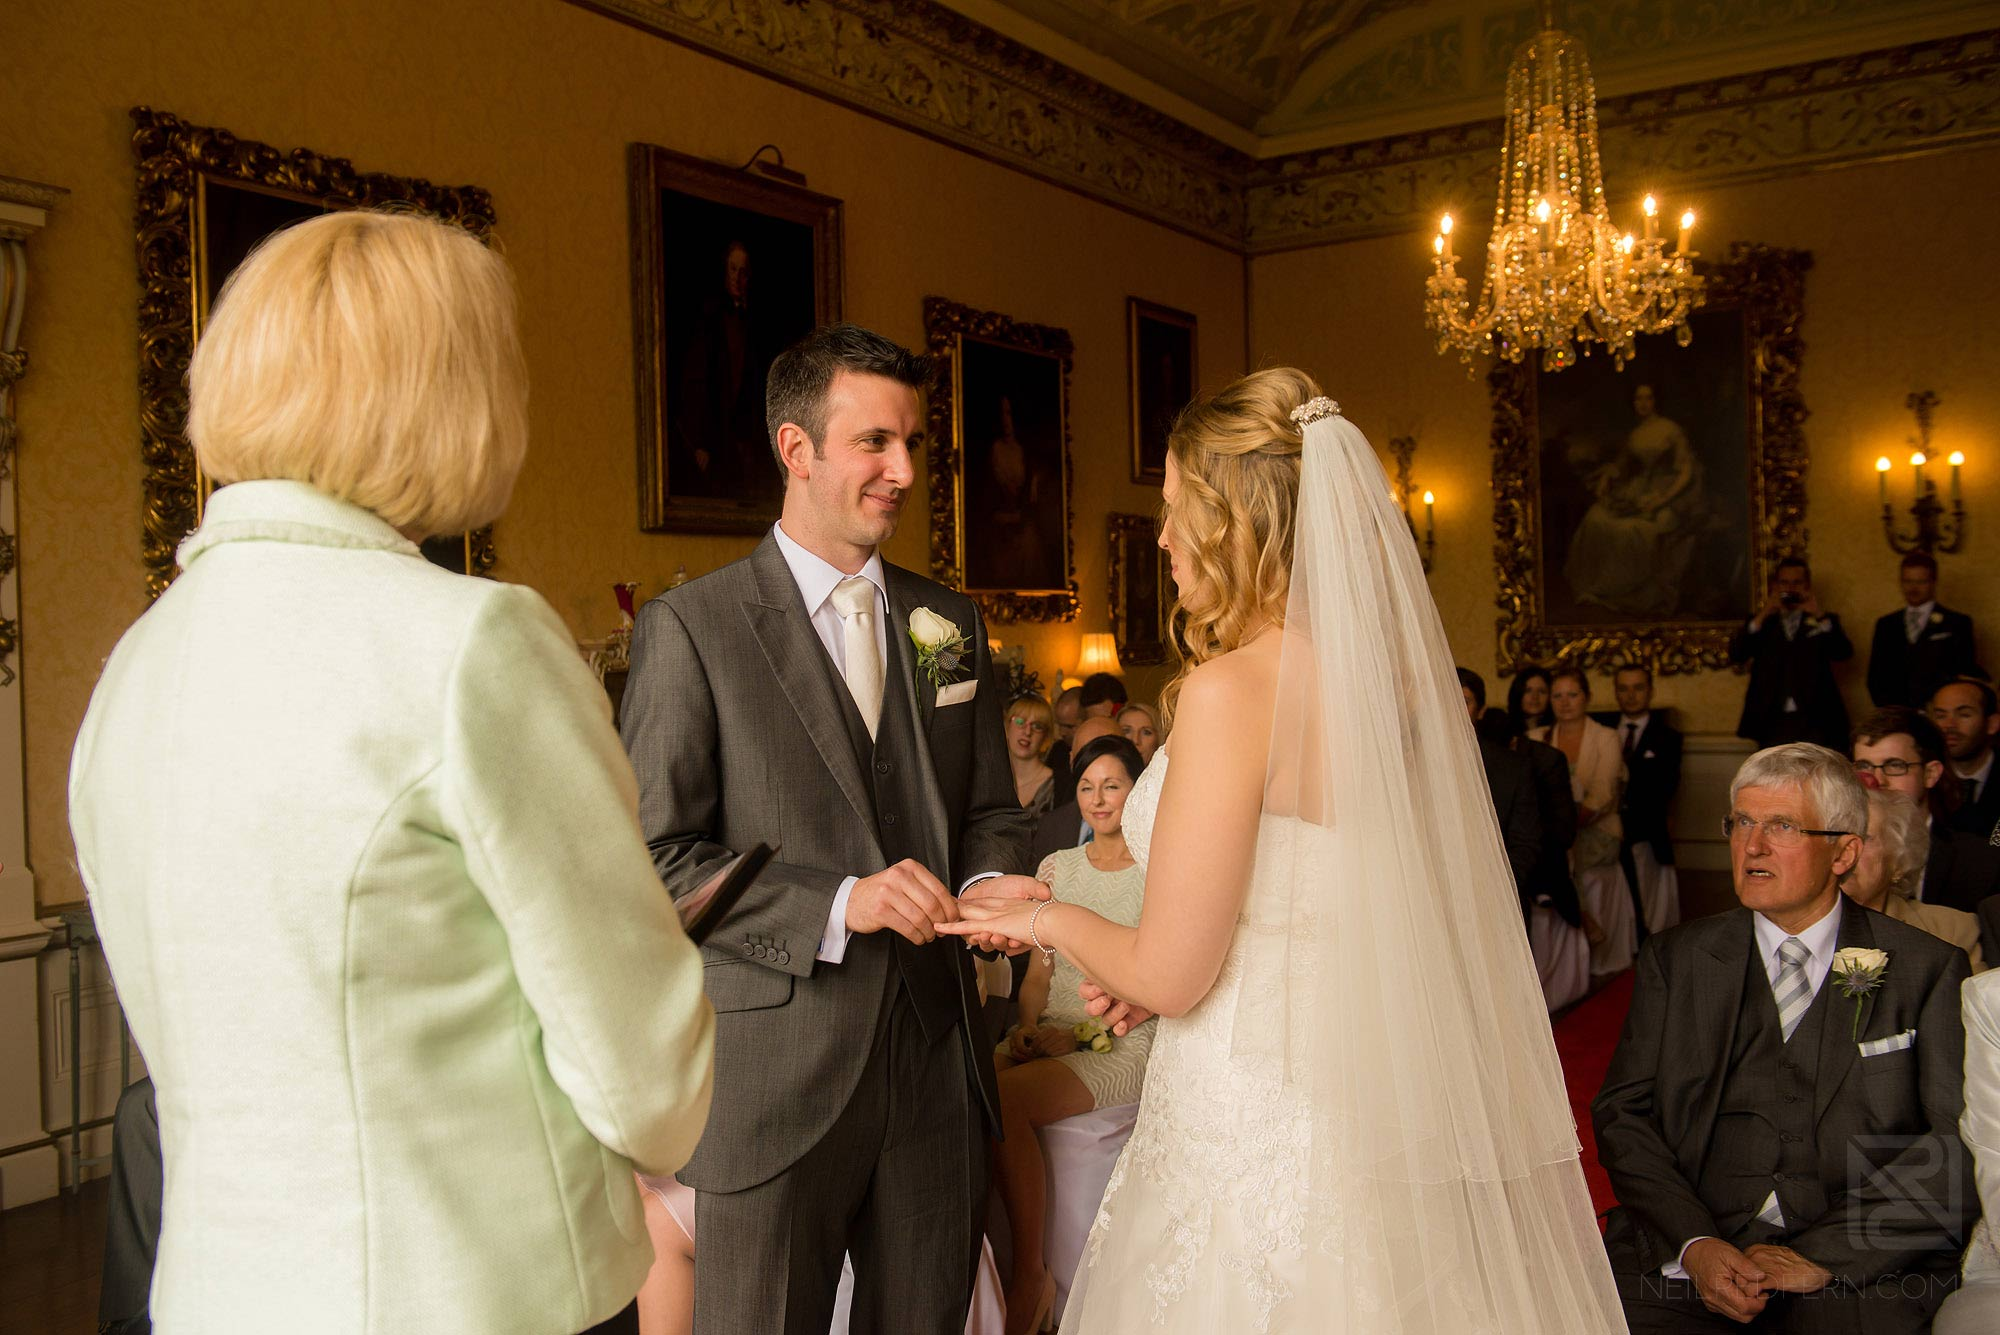 wedding ceremony at Arley Hall in Cheshire